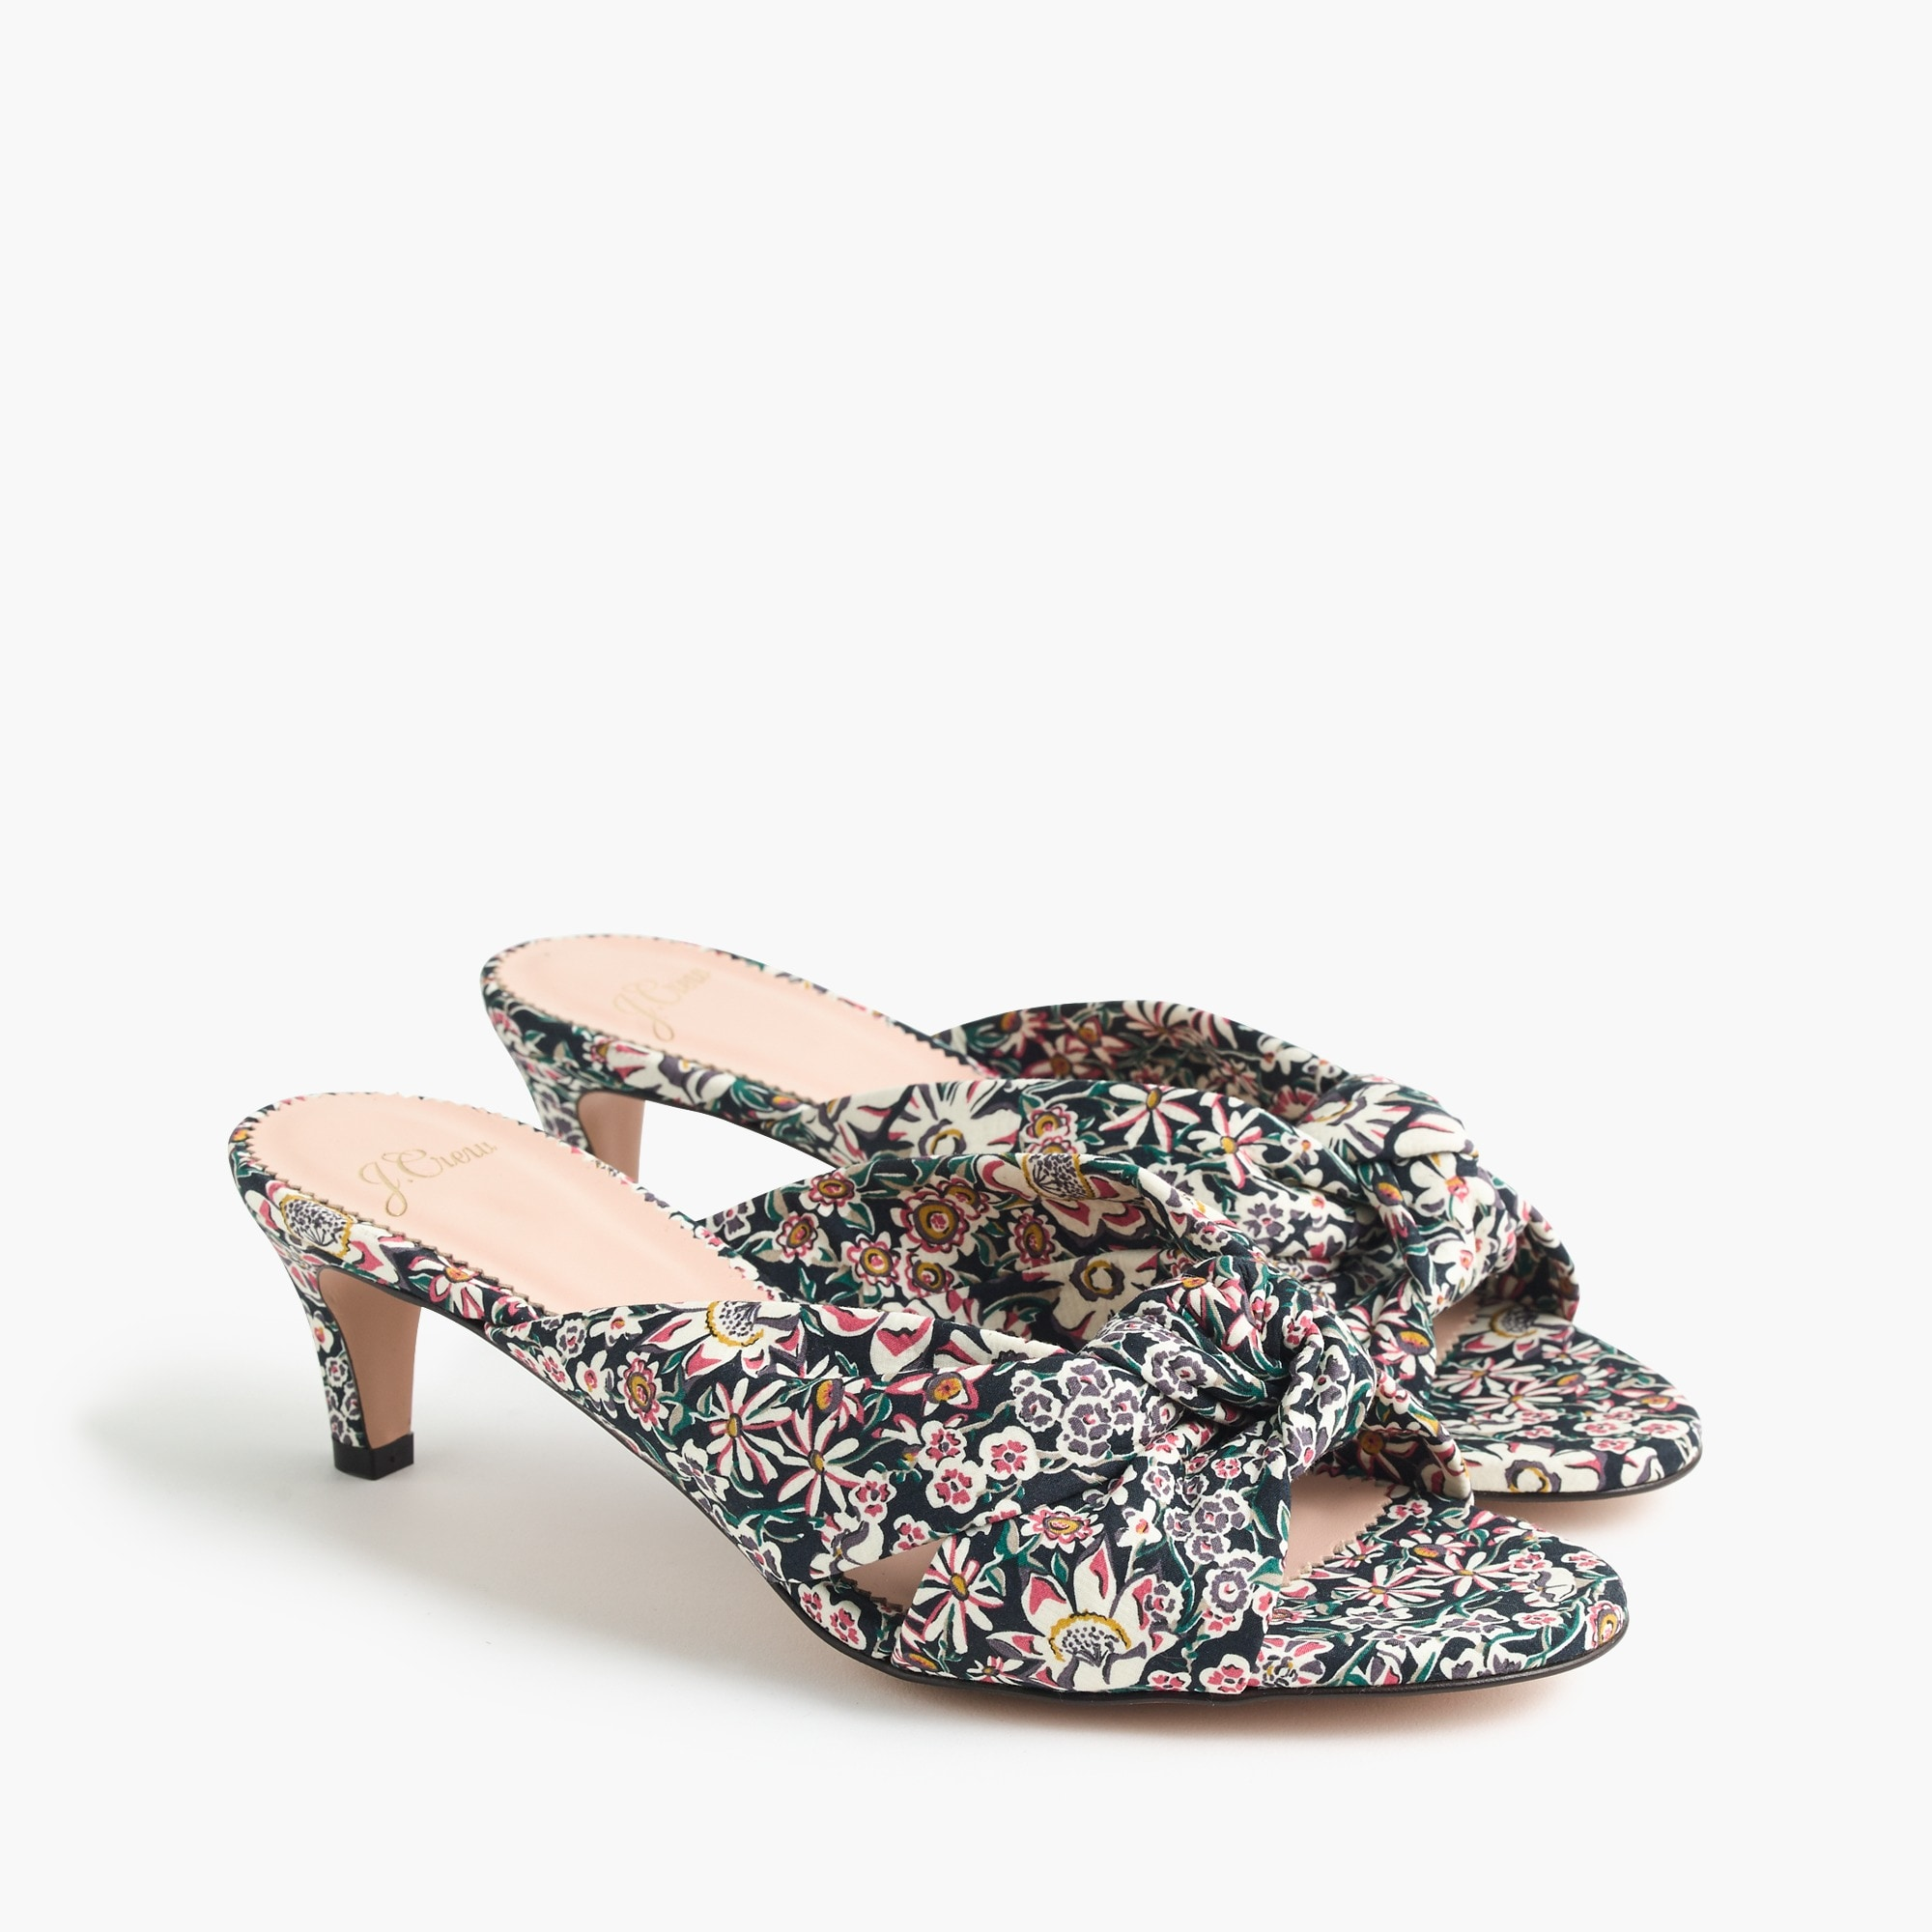 Knotted kitten heels in floral